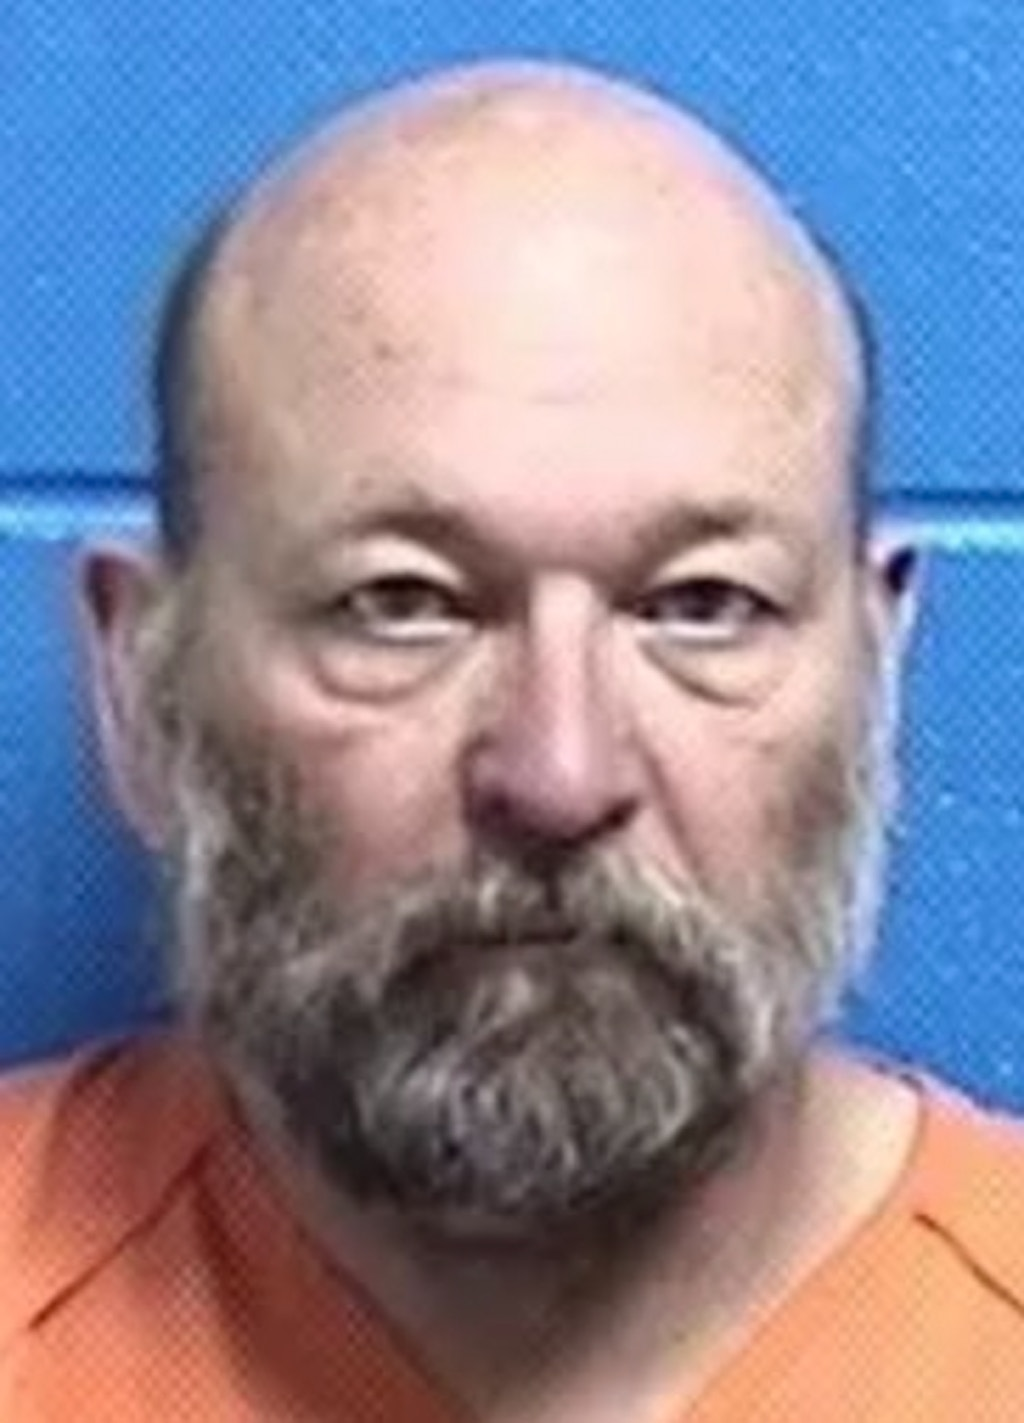 Montana Prosecutors Drop Death Penalty Against Mentally Ill Defendant